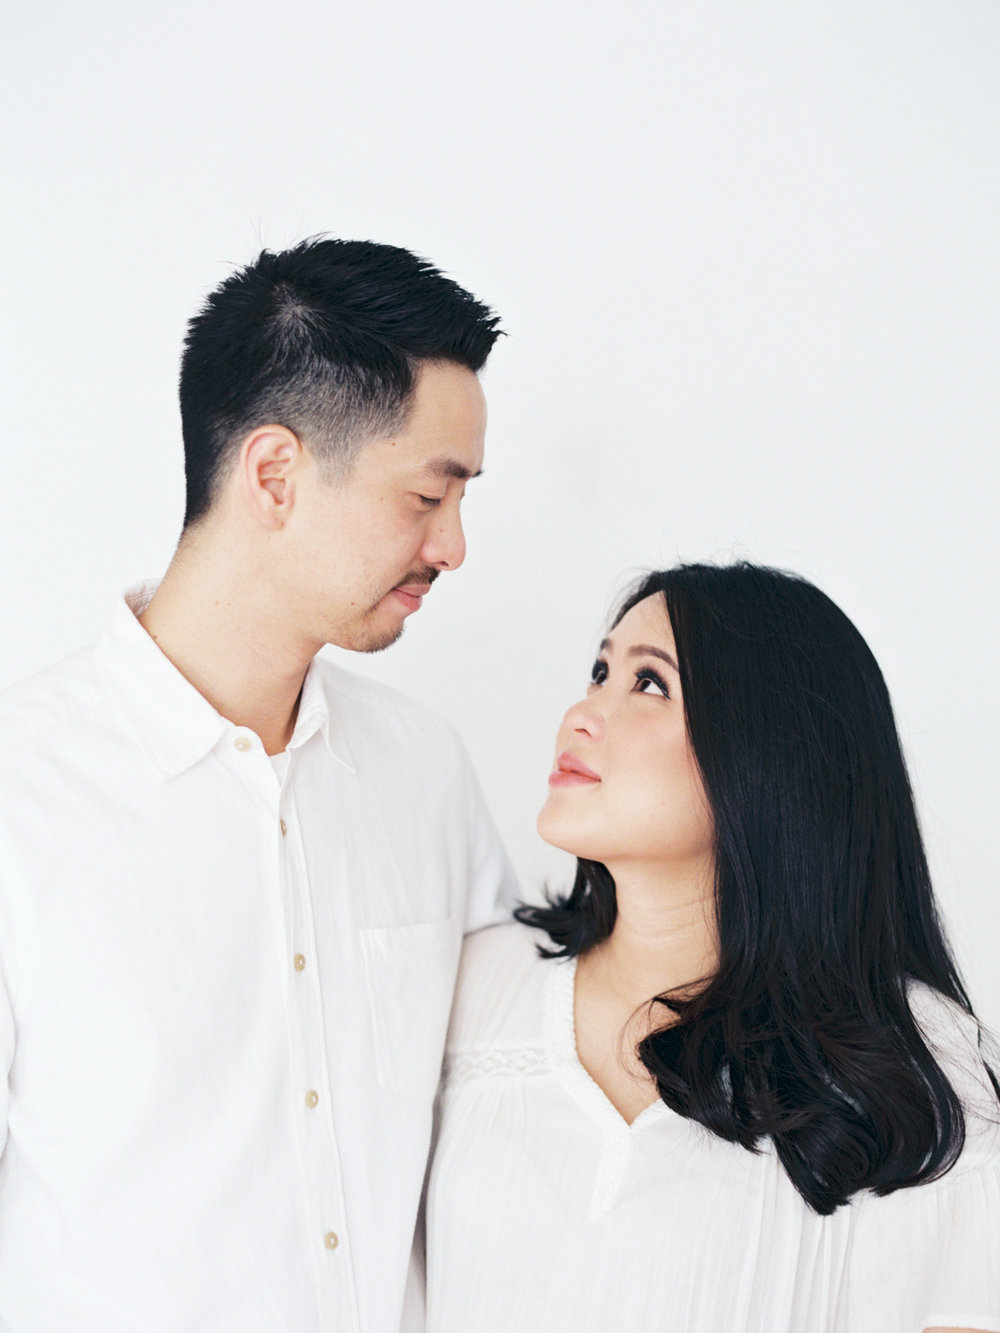 Gaby and Tim-Relaxed-Airy-Simple-Maternity Portrait Photoshoot-At Home-Jakarta-Studio June-Film Photography & Styling-32.jpg